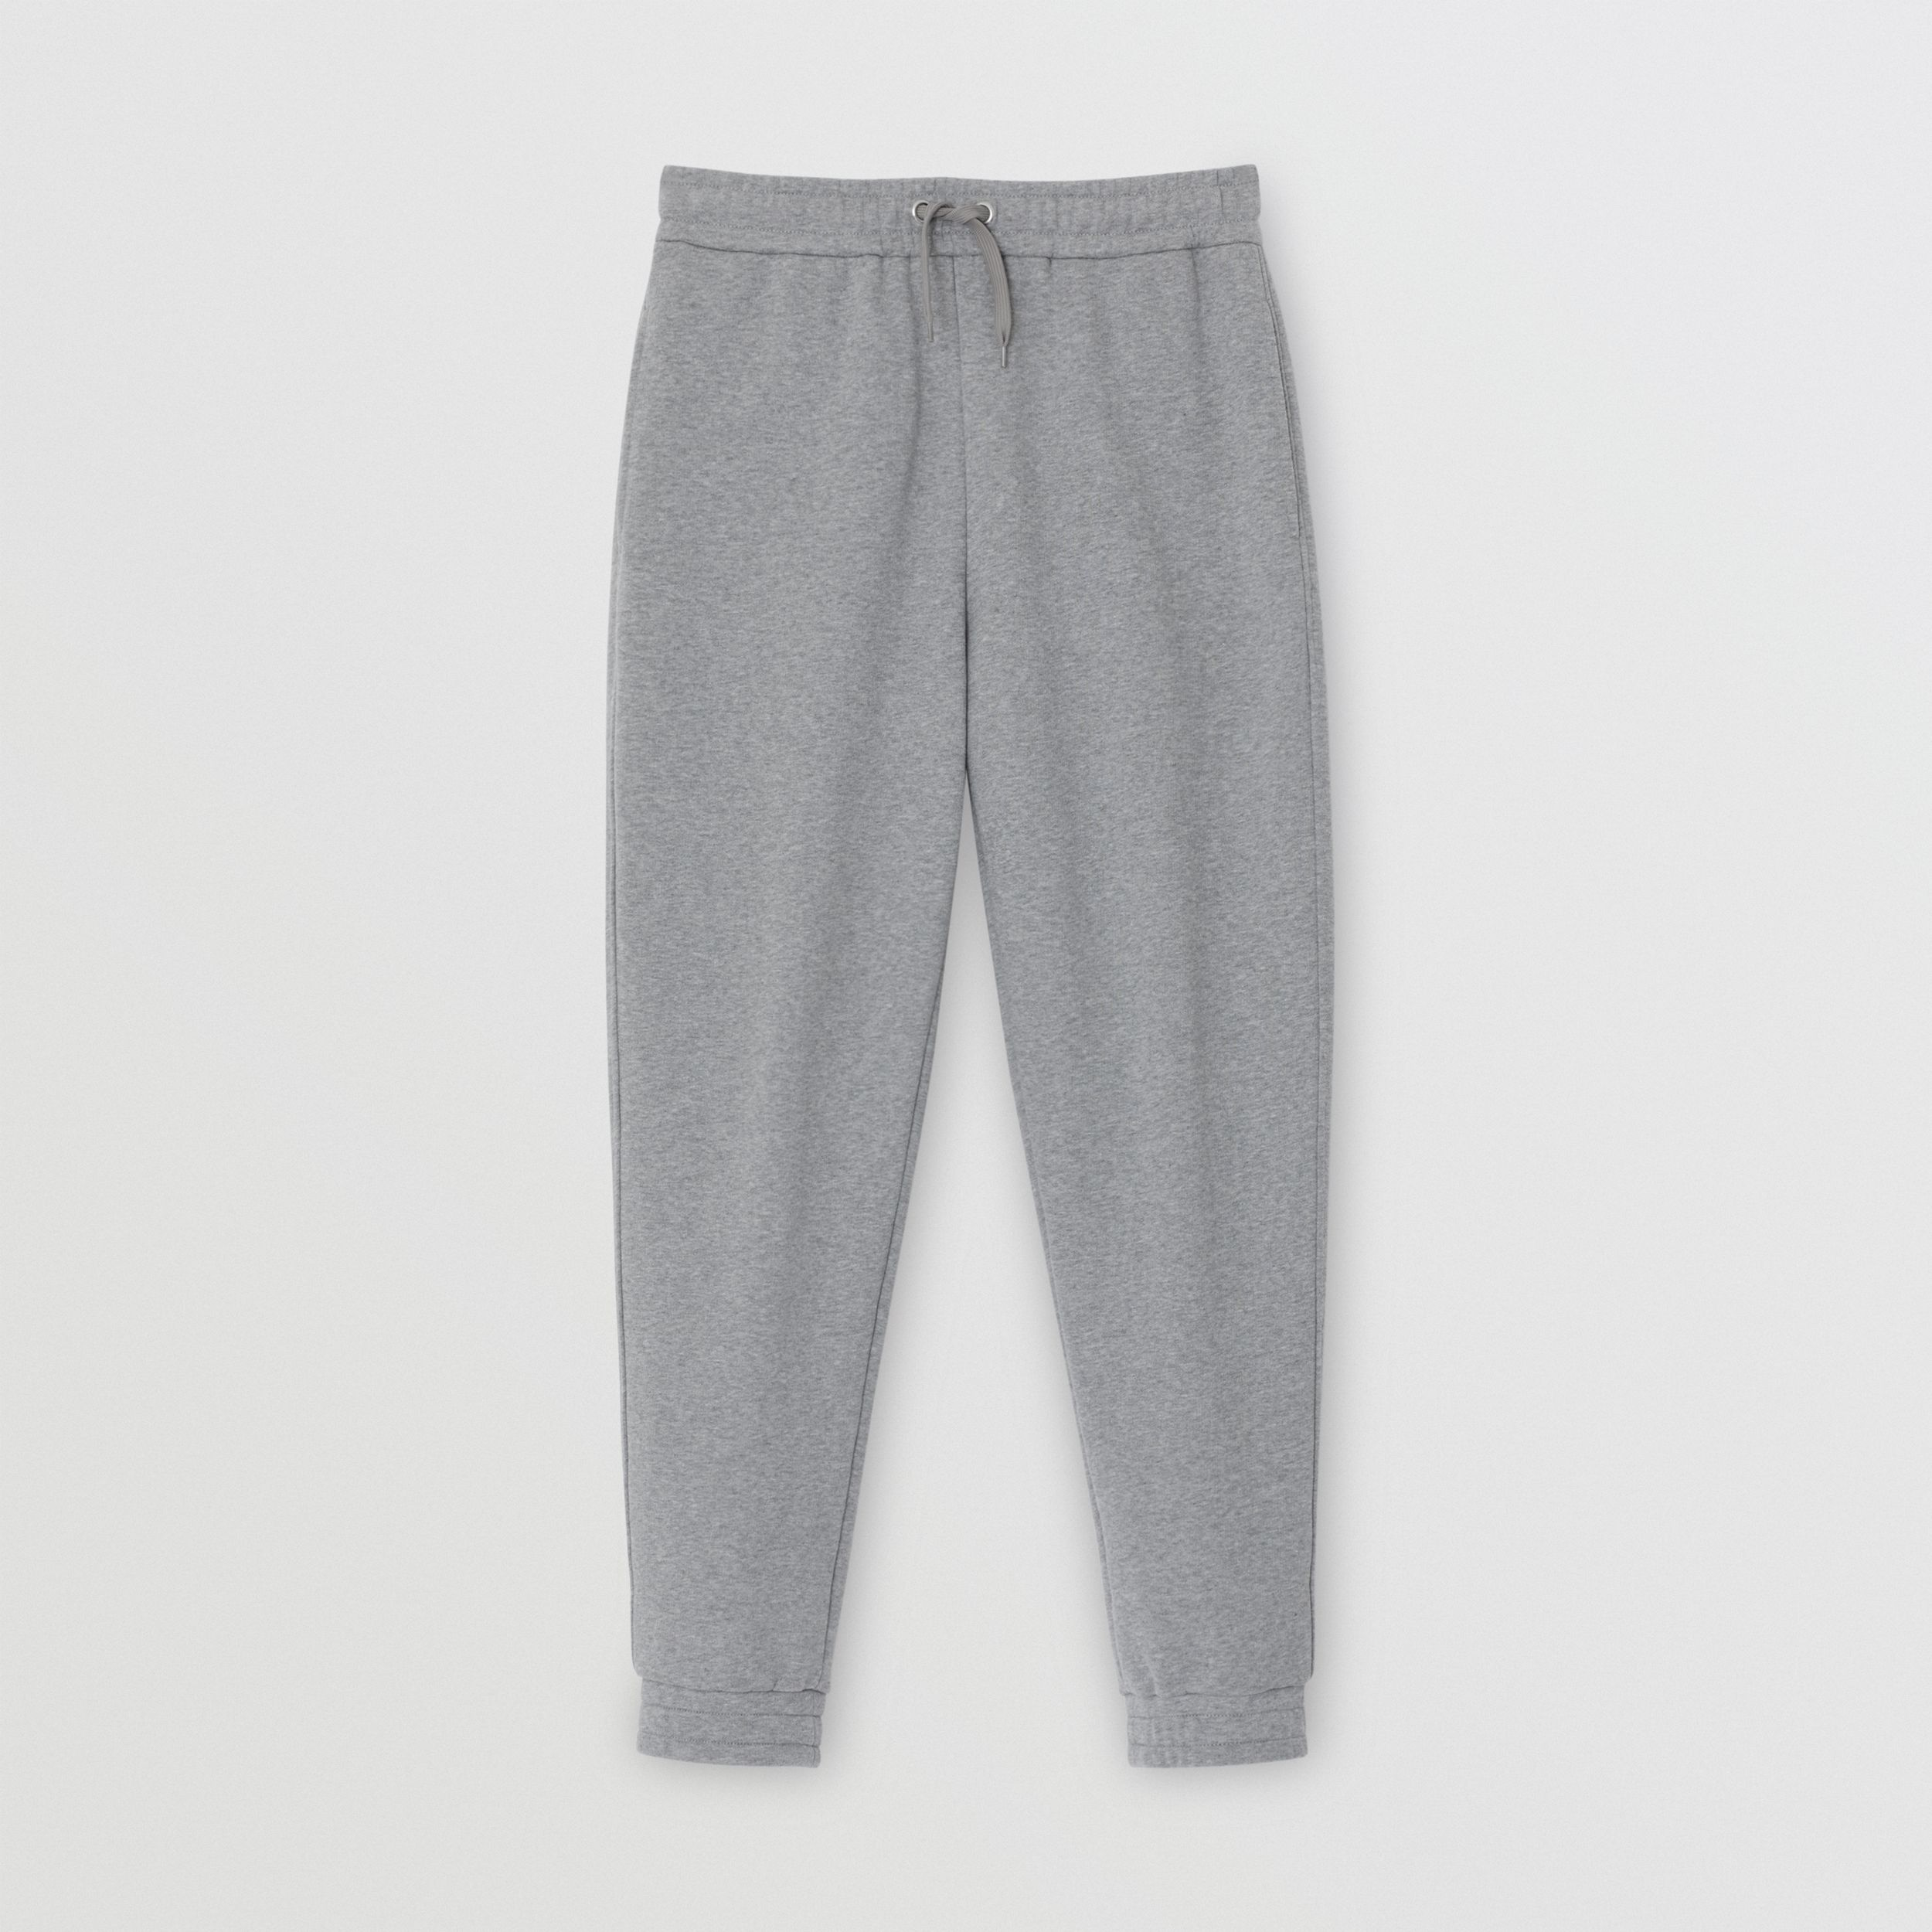 Logo Print Cotton Trackpants in Pale Grey Melange - Men | Burberry - 4